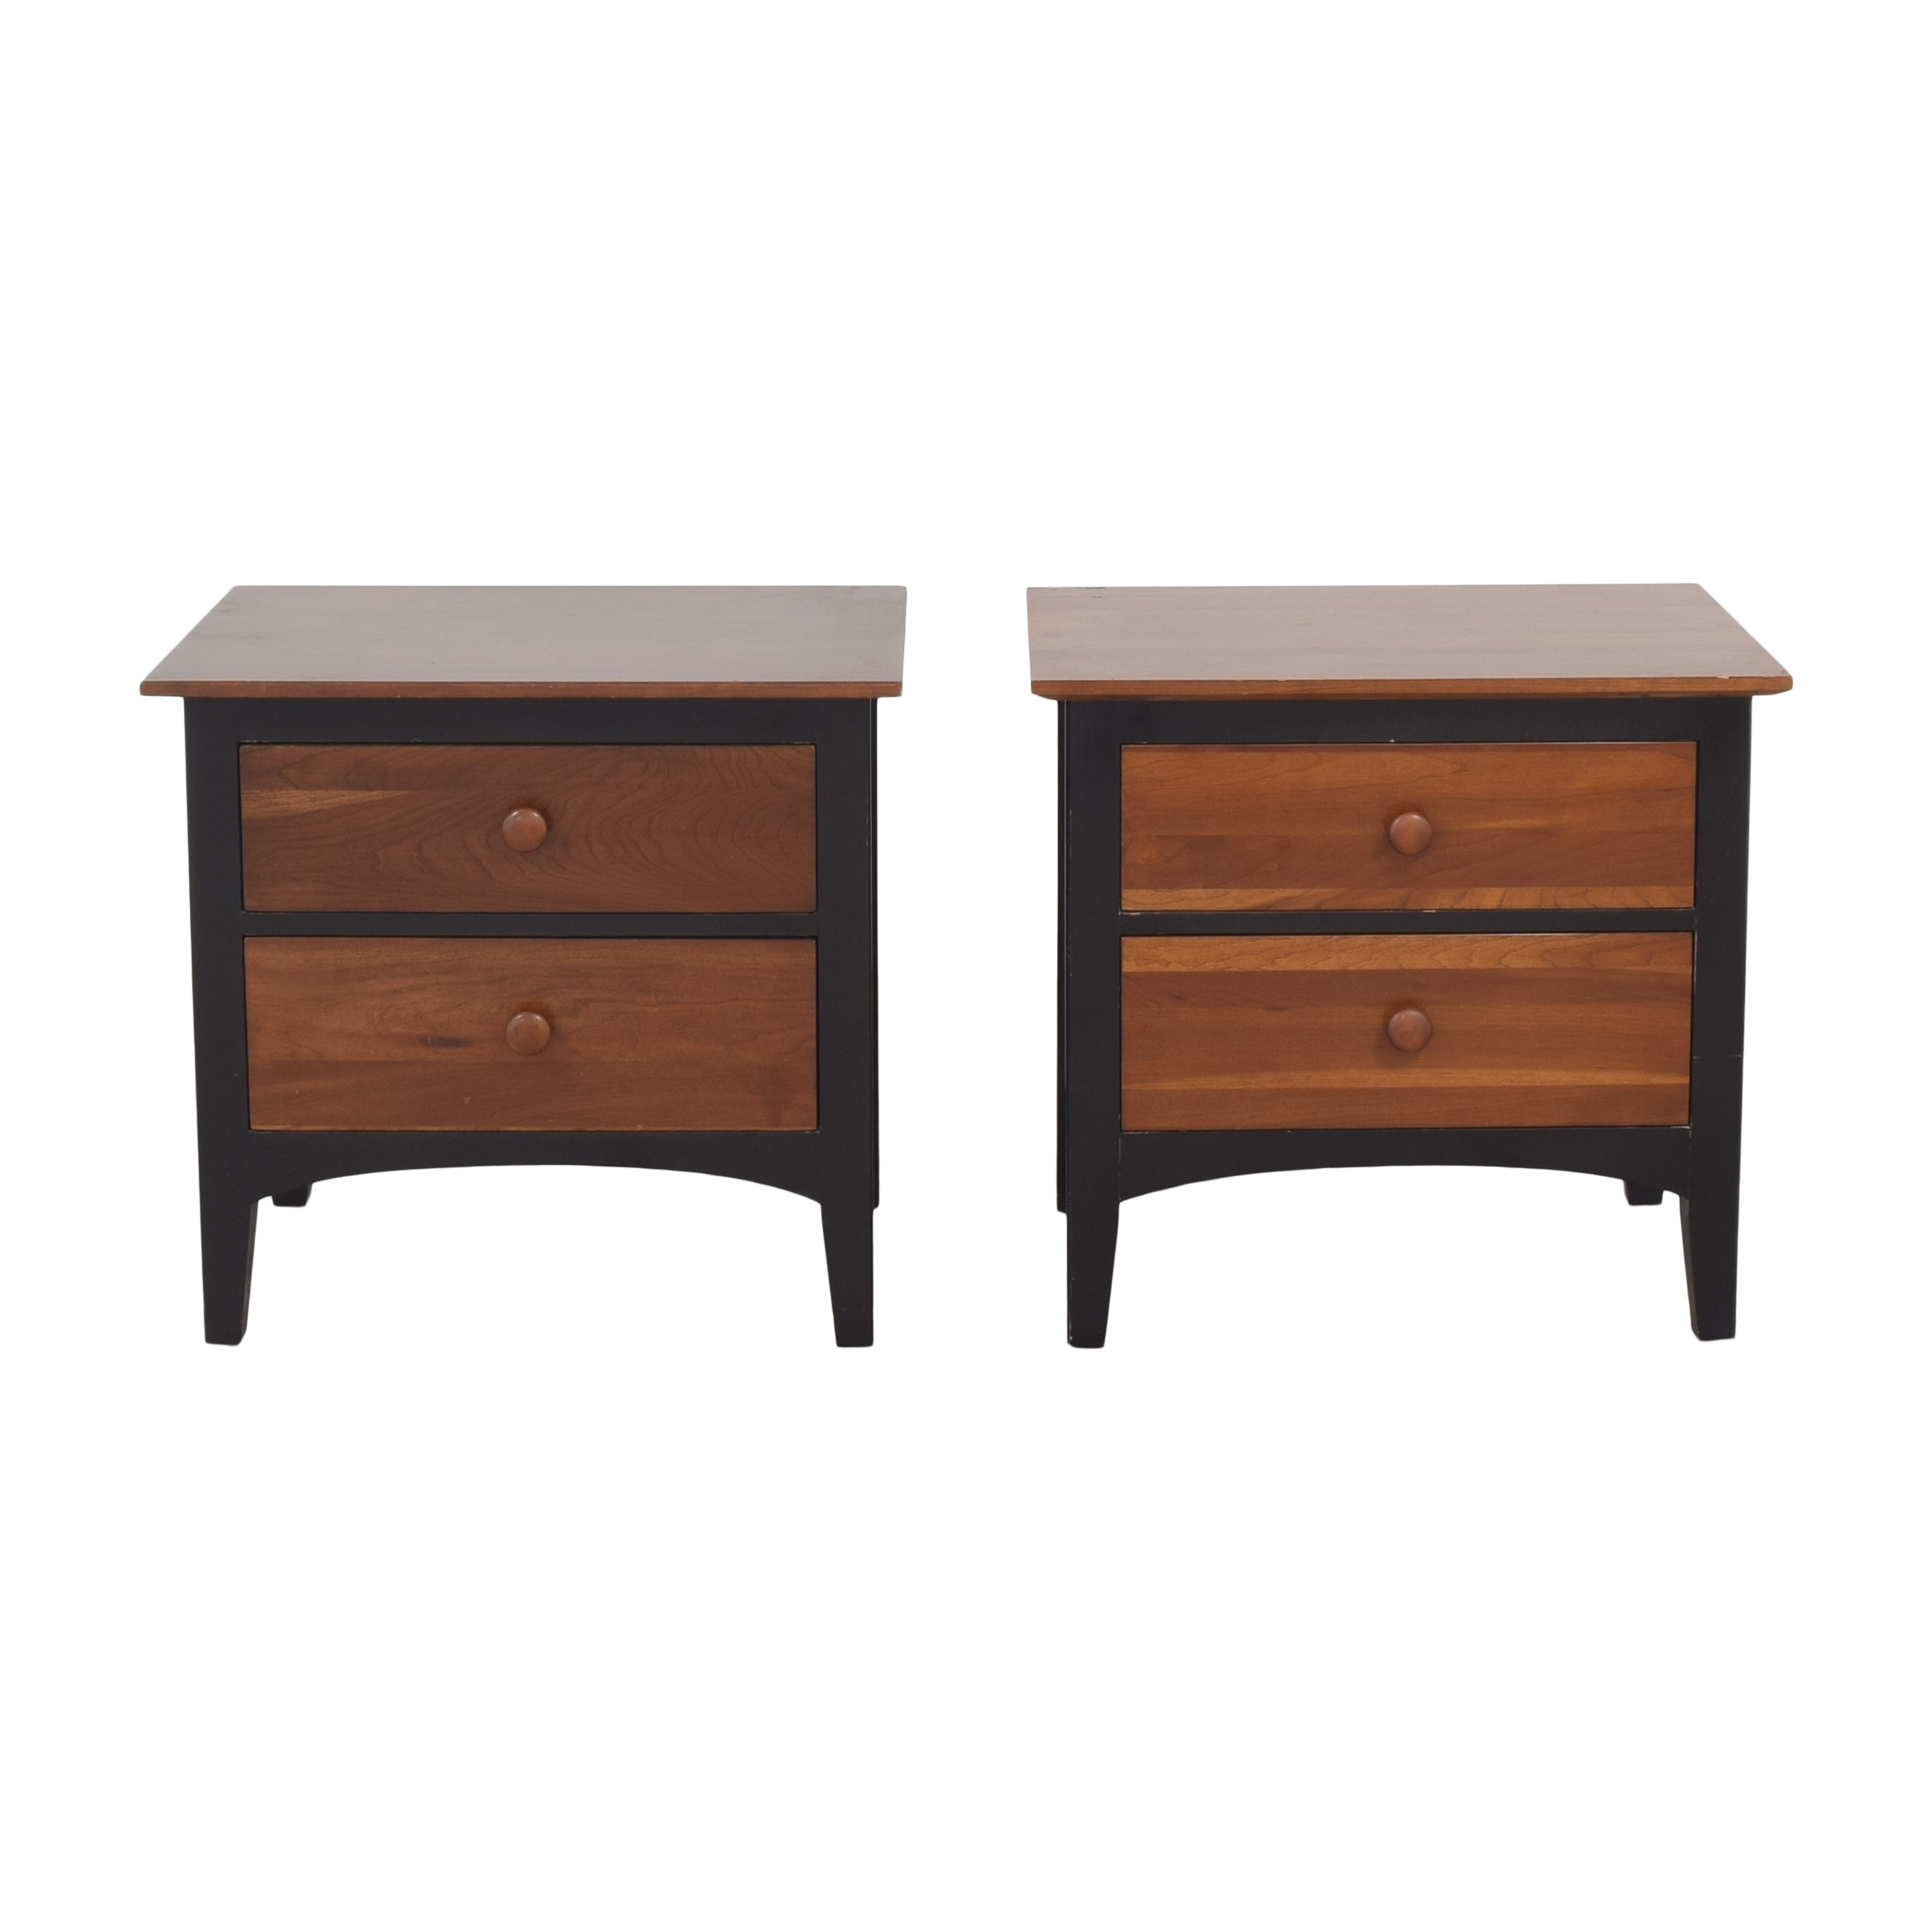 shop Ethan Allen American Impressions Nightstands Ethan Allen End Tables